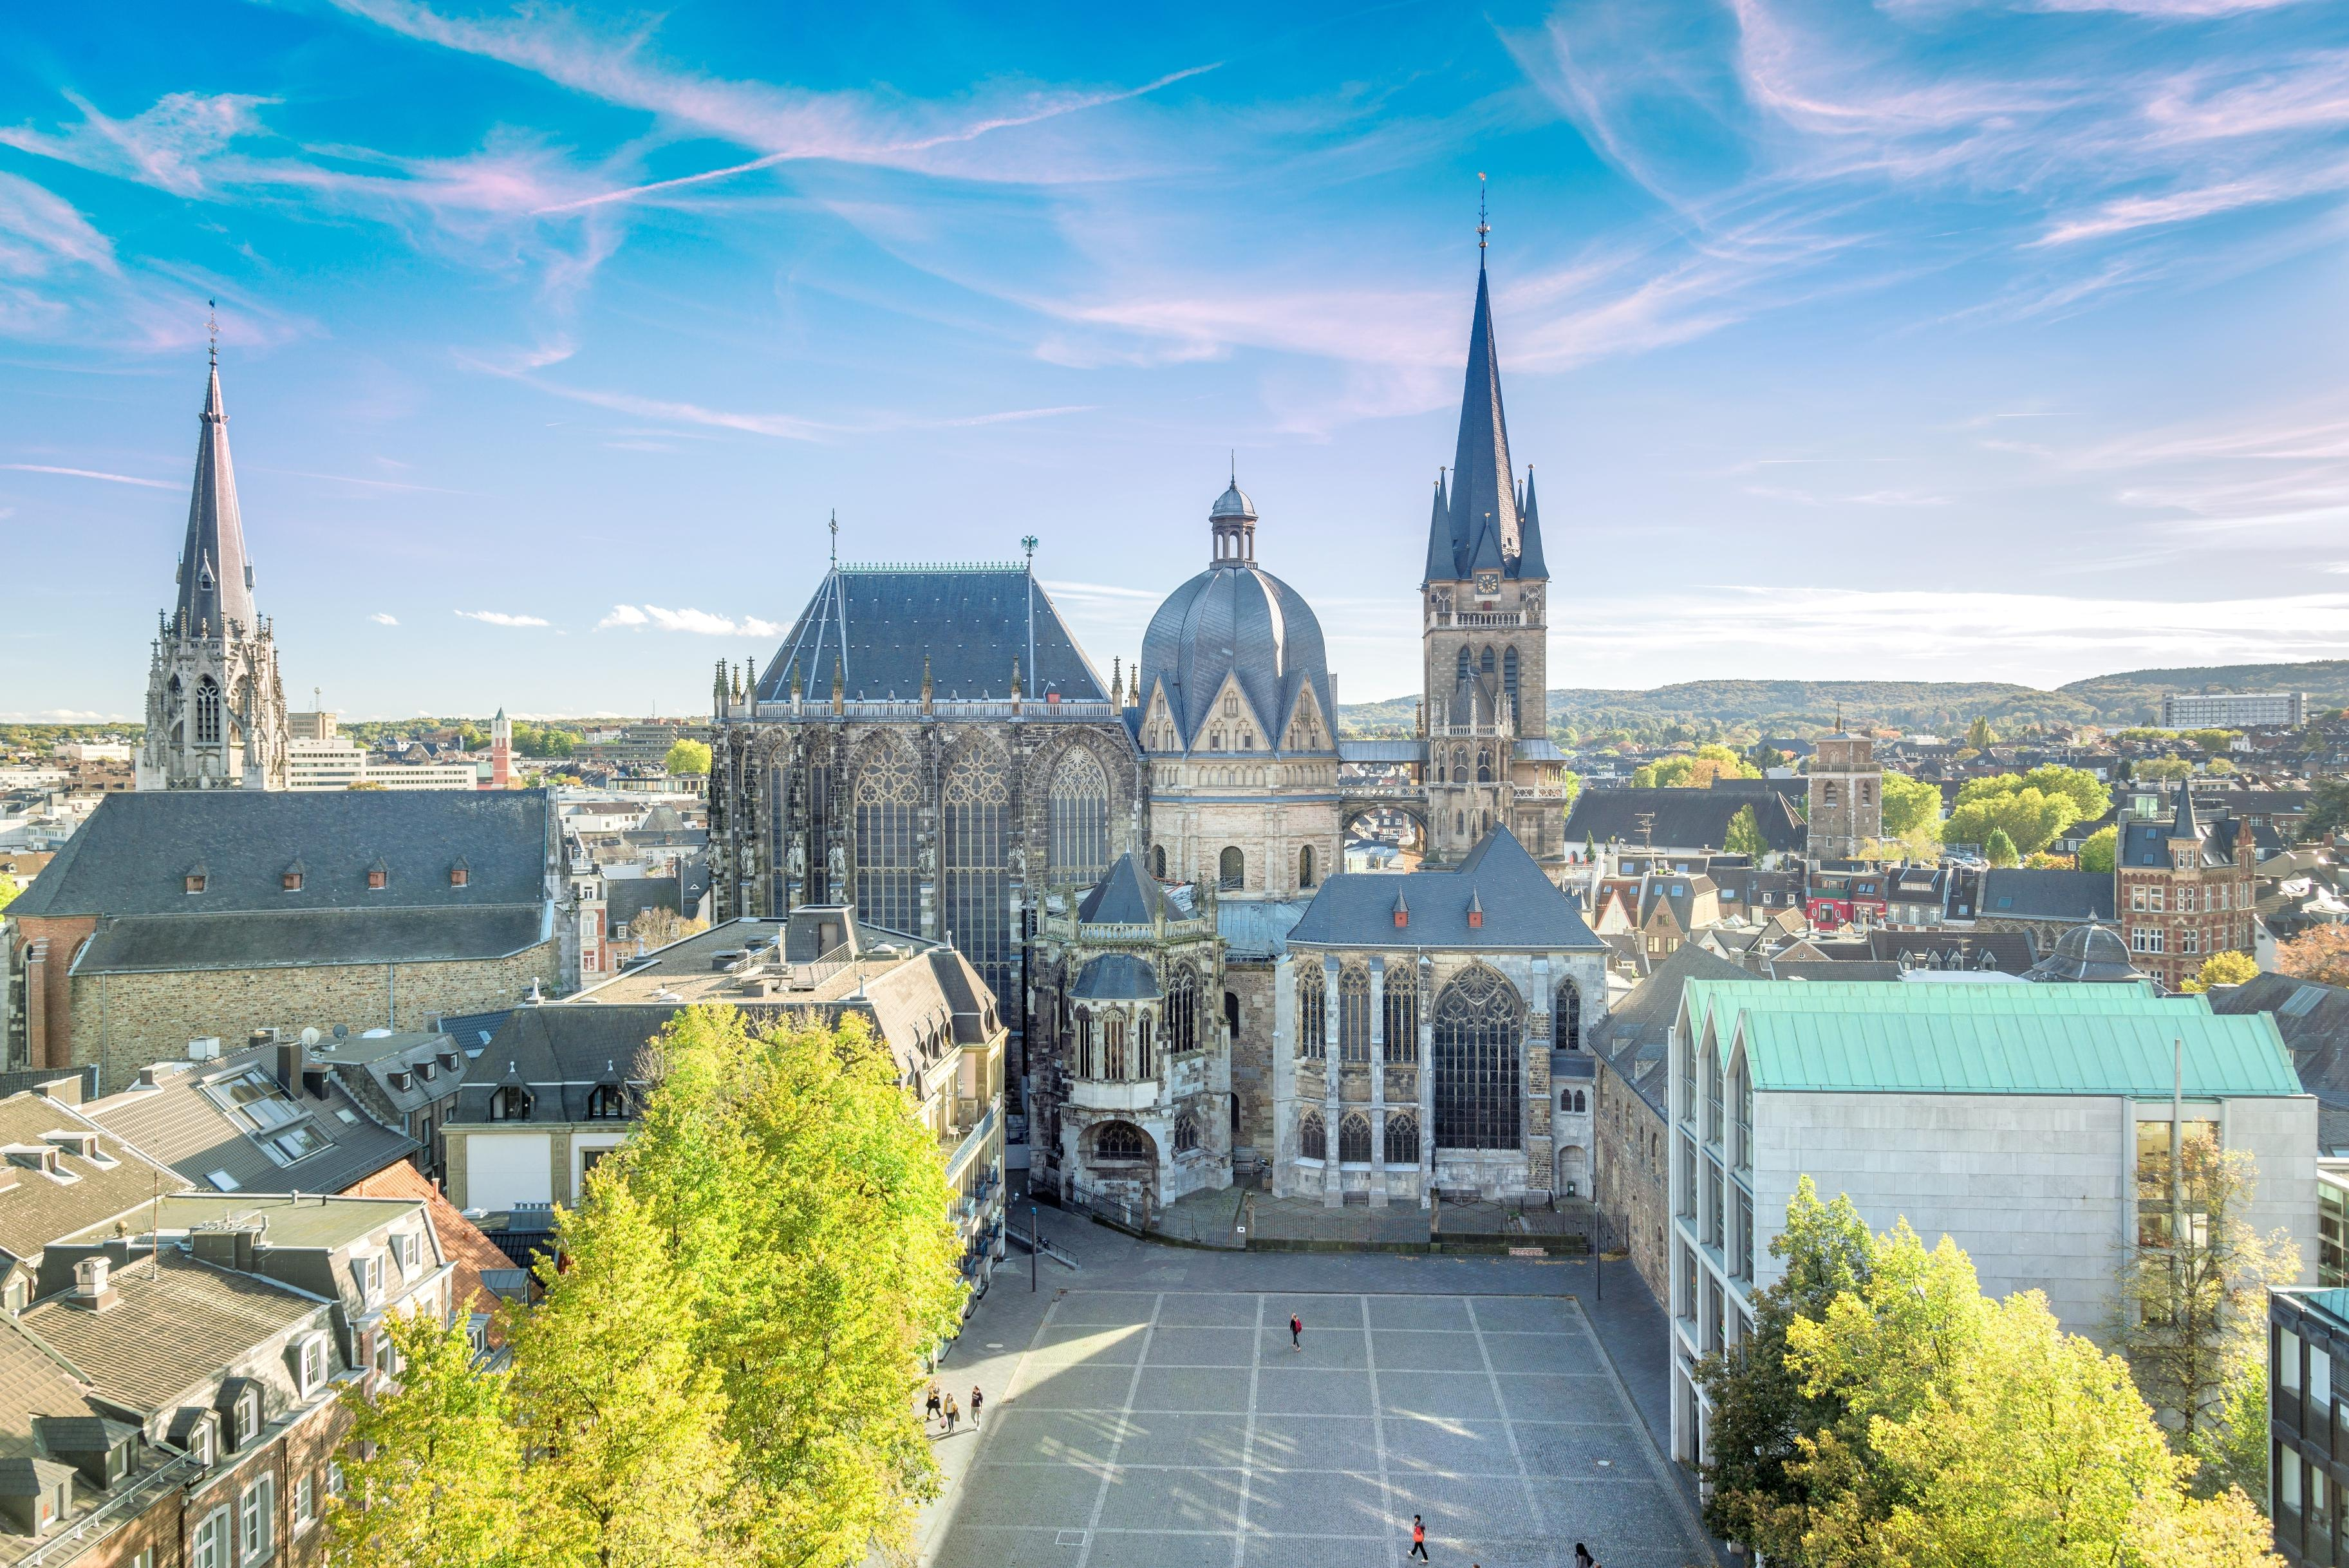 Aachen Cathedral (Dom)